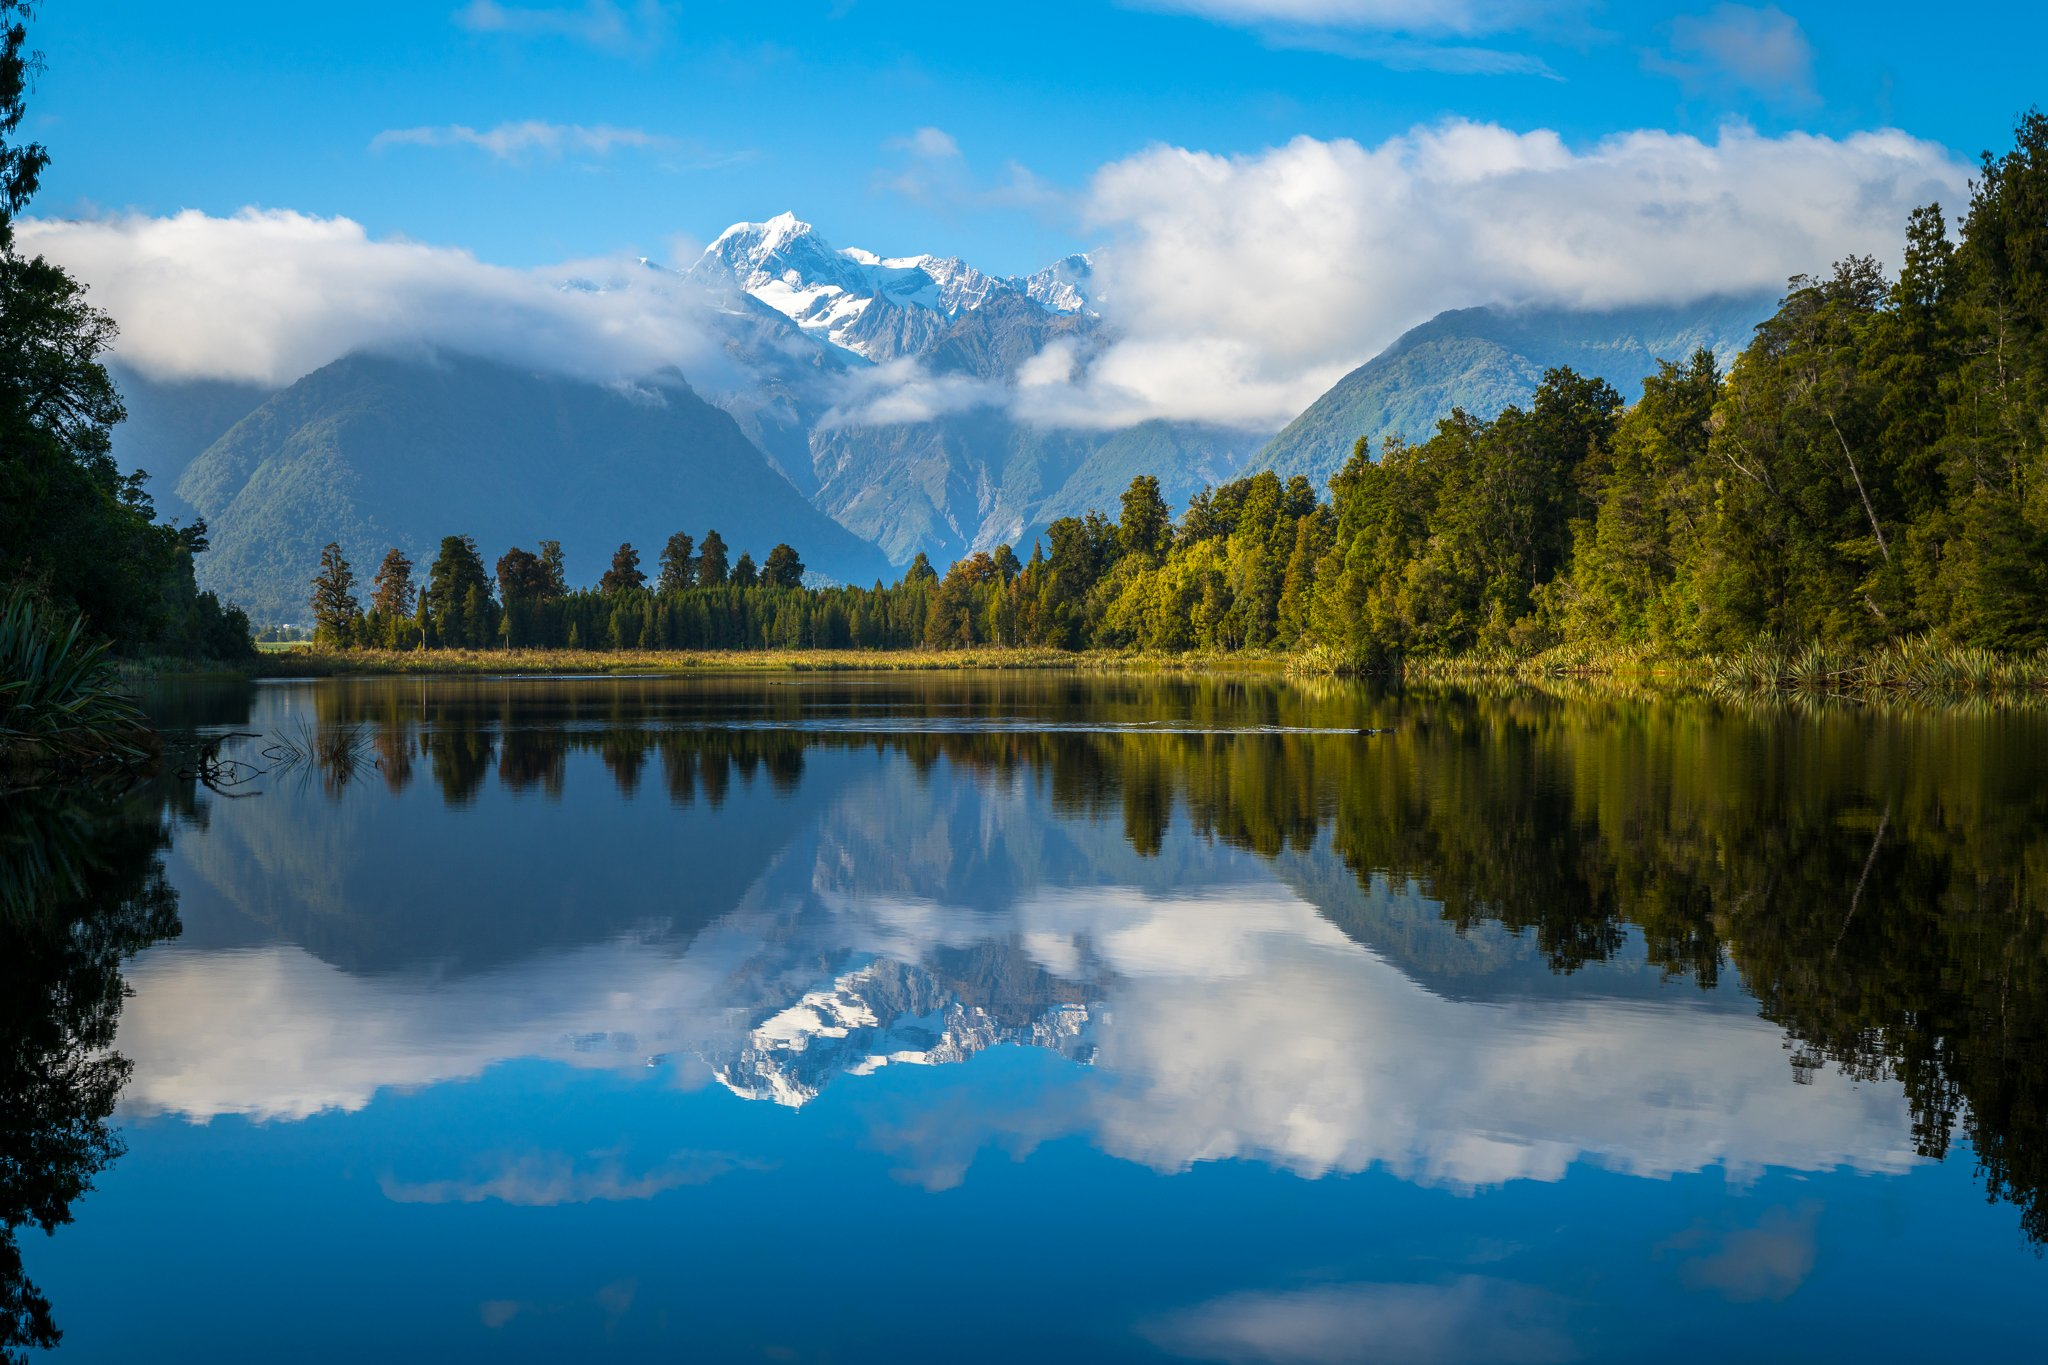 ニュージーランド Twitter: New Zealand Scenery Mountains Lake Forests Clouds Lake Matheson Nature Wallpaper